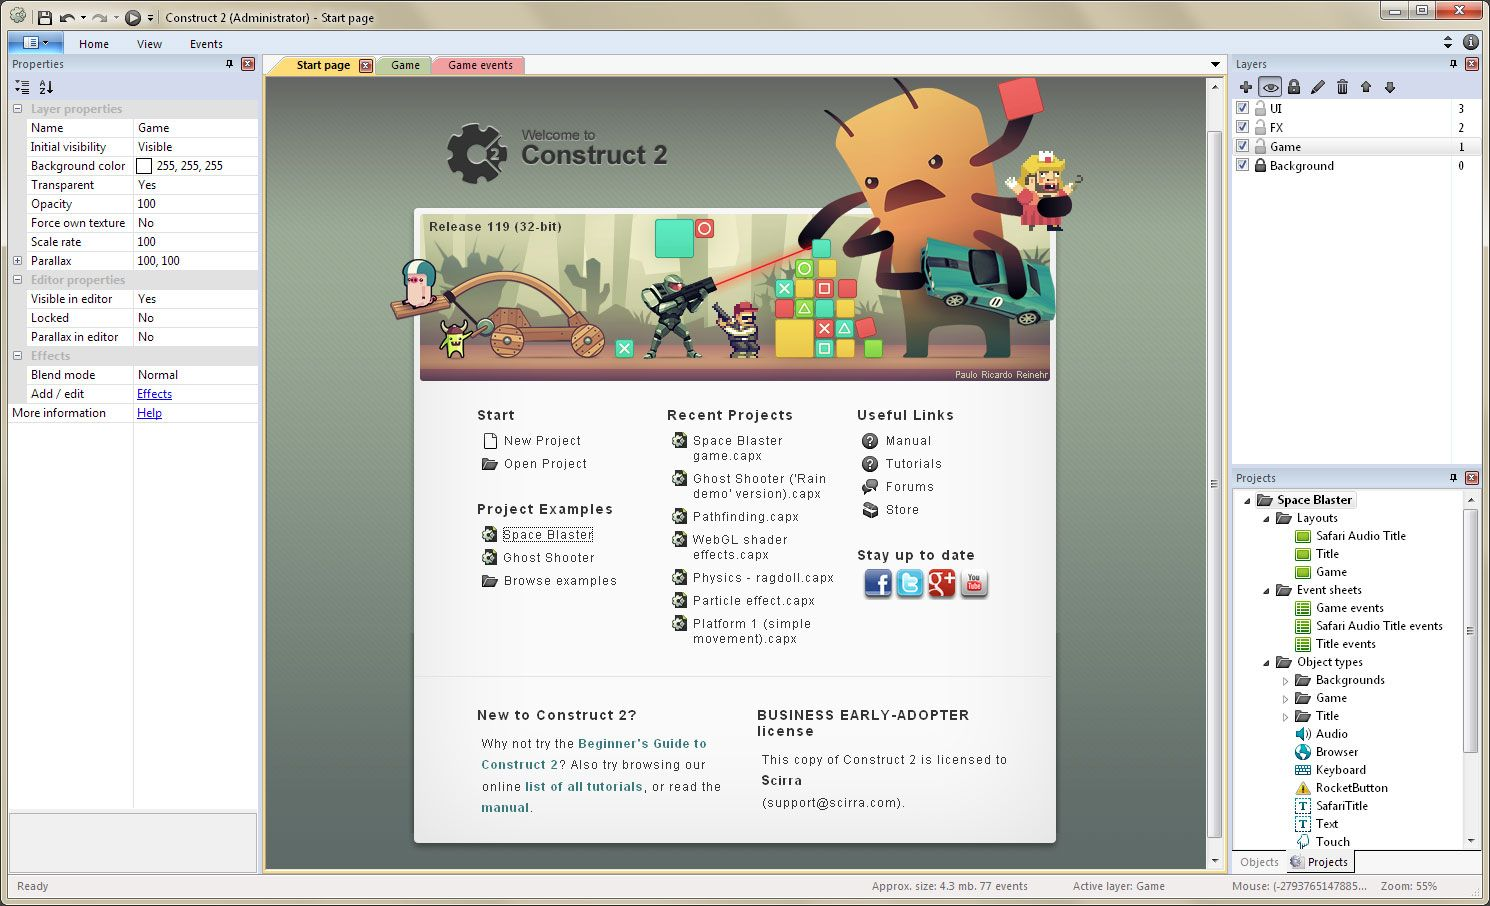 Win Way Resume Amazing Create Games With Construct 2  Scirra  Indie Game Devtips .